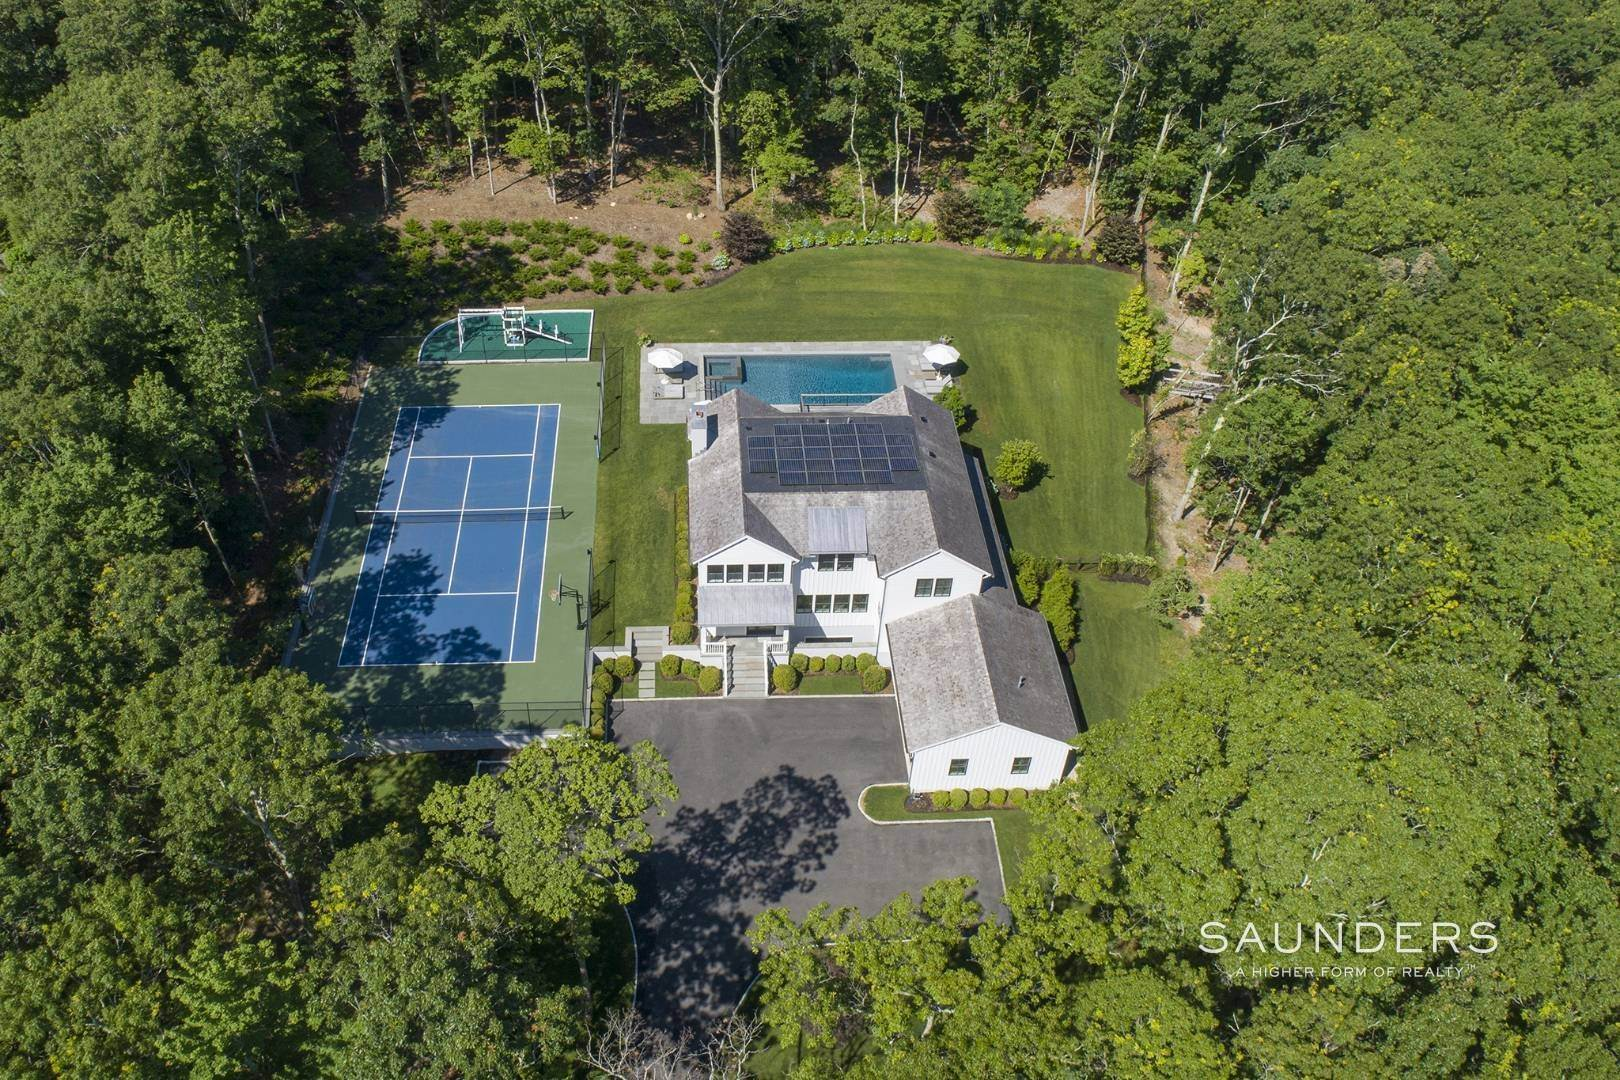 Single Family Homes for Sale at Two House Modern Compound 375 Brick Kiln Road, Bridgehampton, Southampton Town, NY 11932